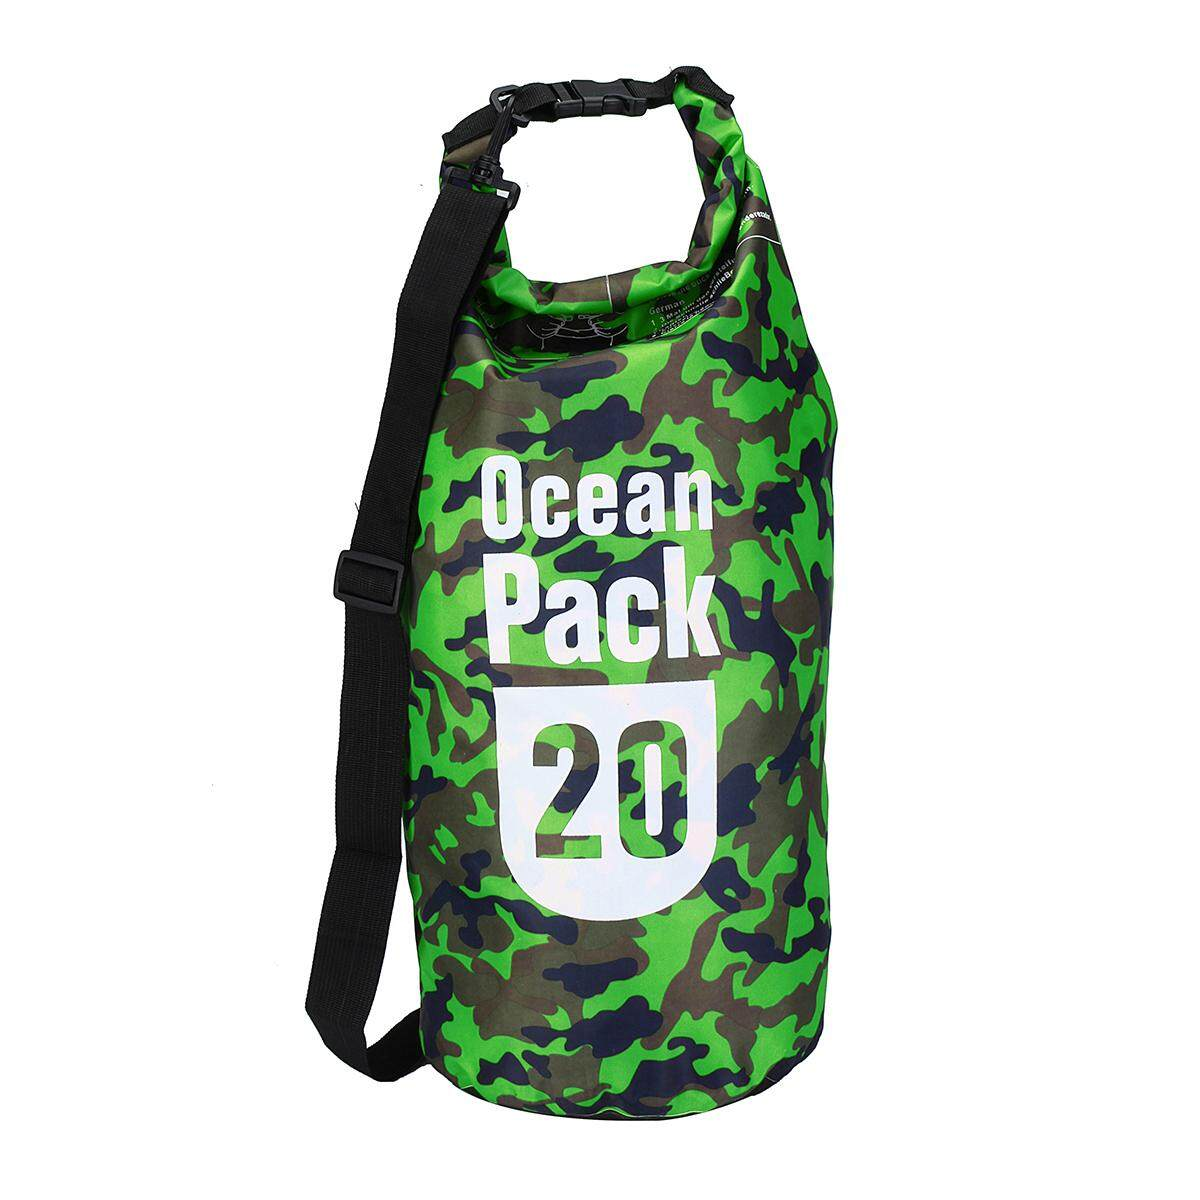 Water Sports Dry Bags. 11561 items found in Dry Bags. 20L Camouflage Multi  - functional Outdoor Drift Waterproof Bag Storage Bag 372b884da309c